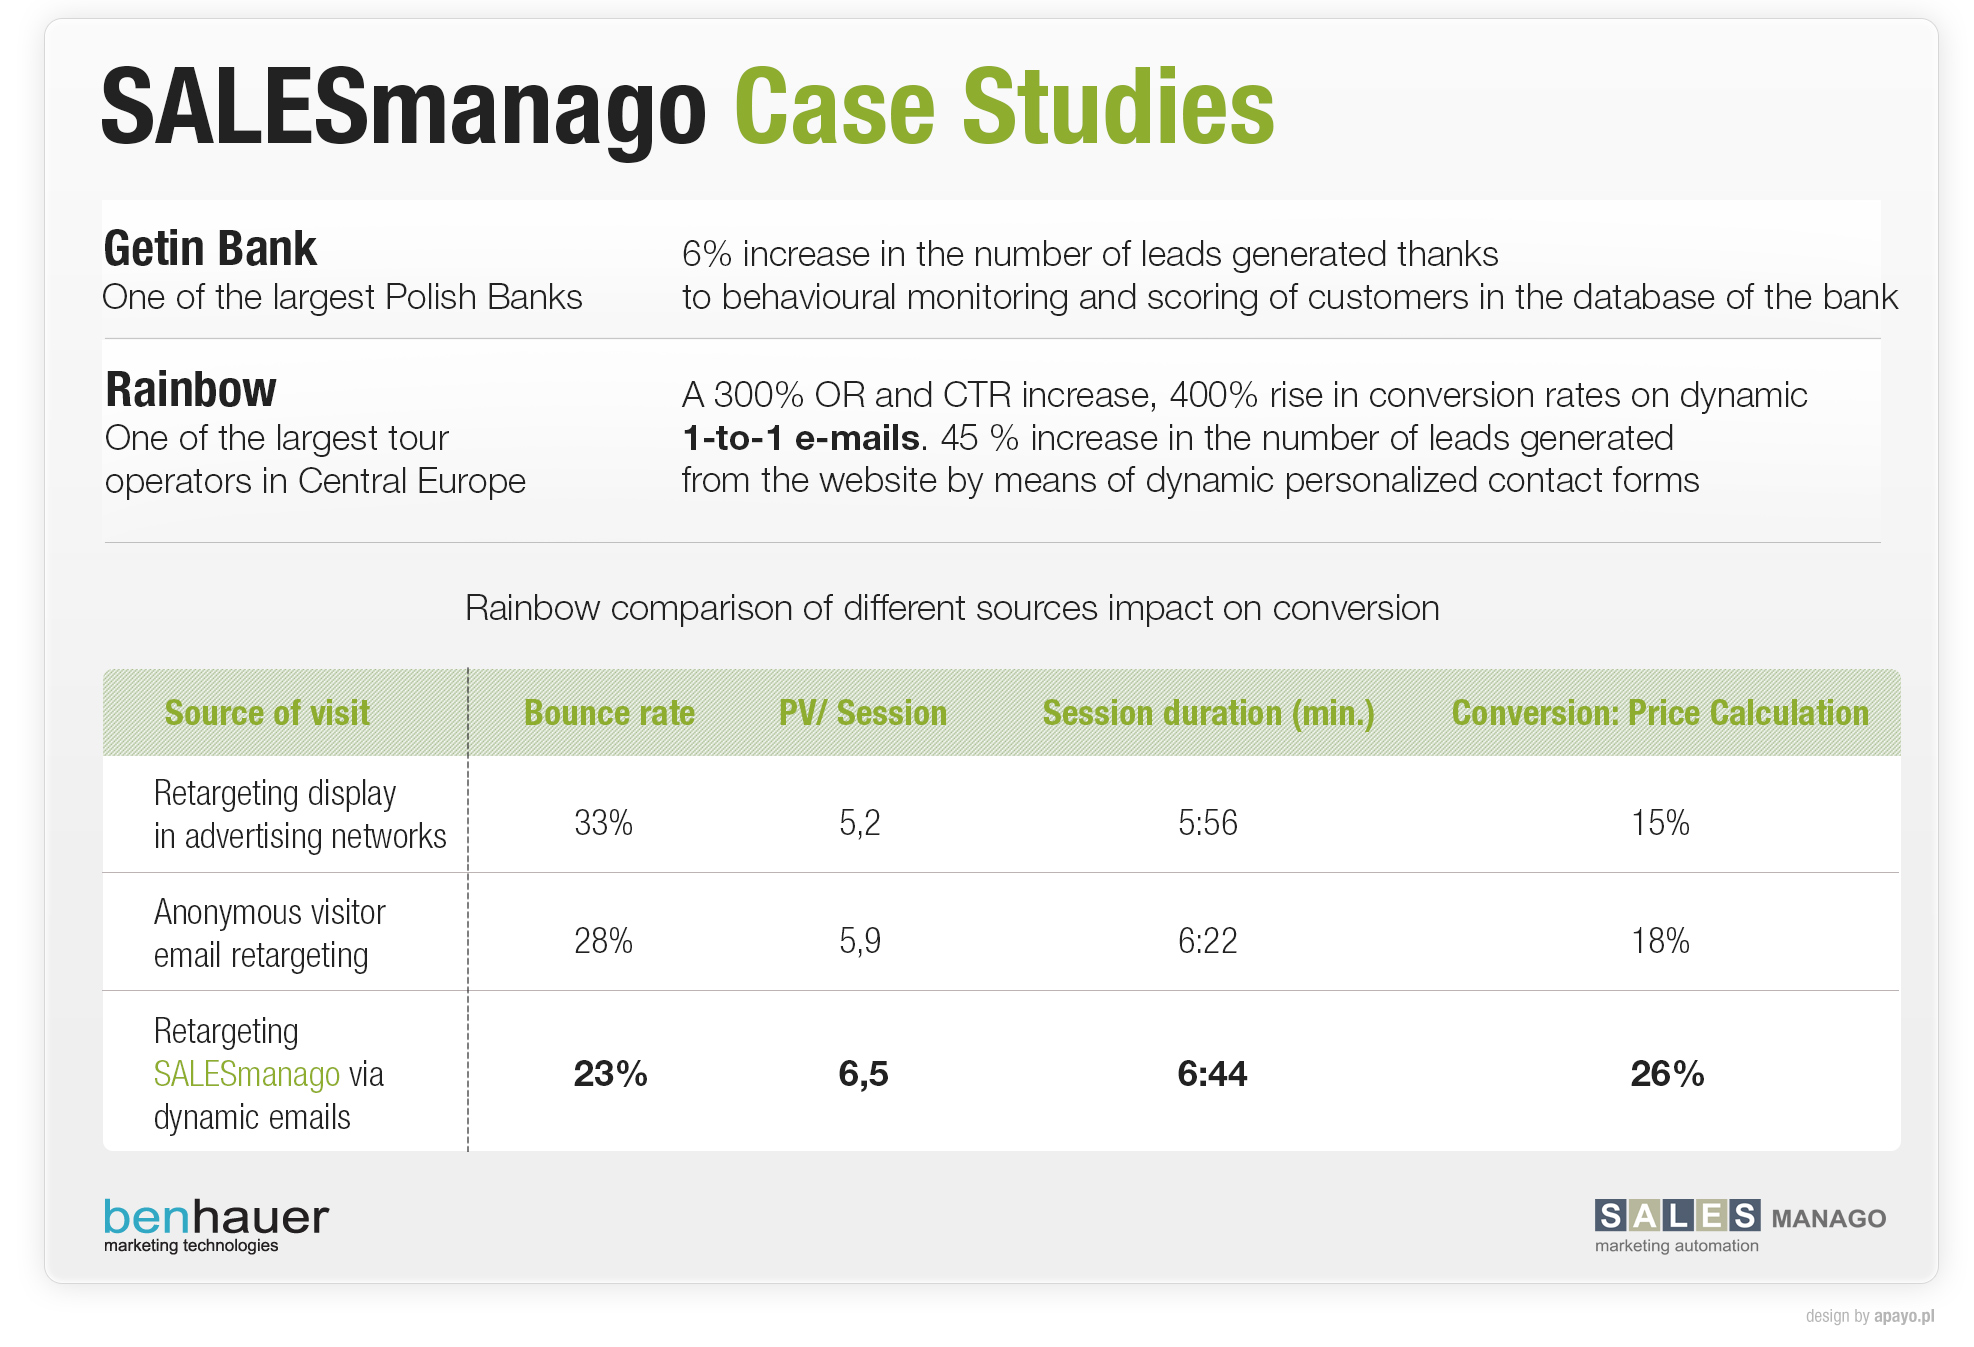 SALESmanago case studies